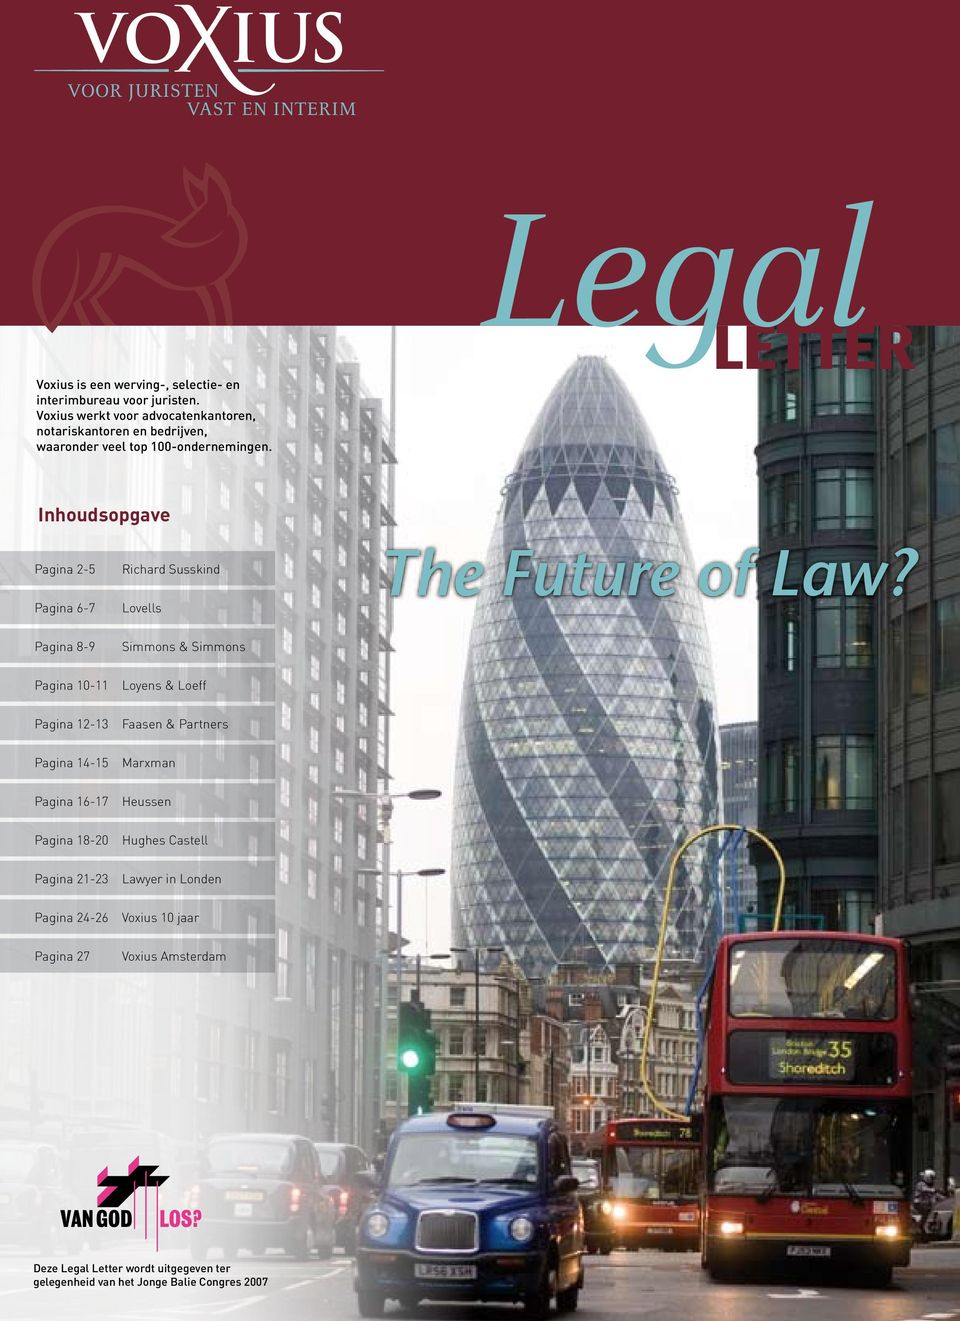 Legal Letter Inhoudsopgave Pagina 2-5 Pagina 6-7 Richard Susskind Lovells The Future of Law?